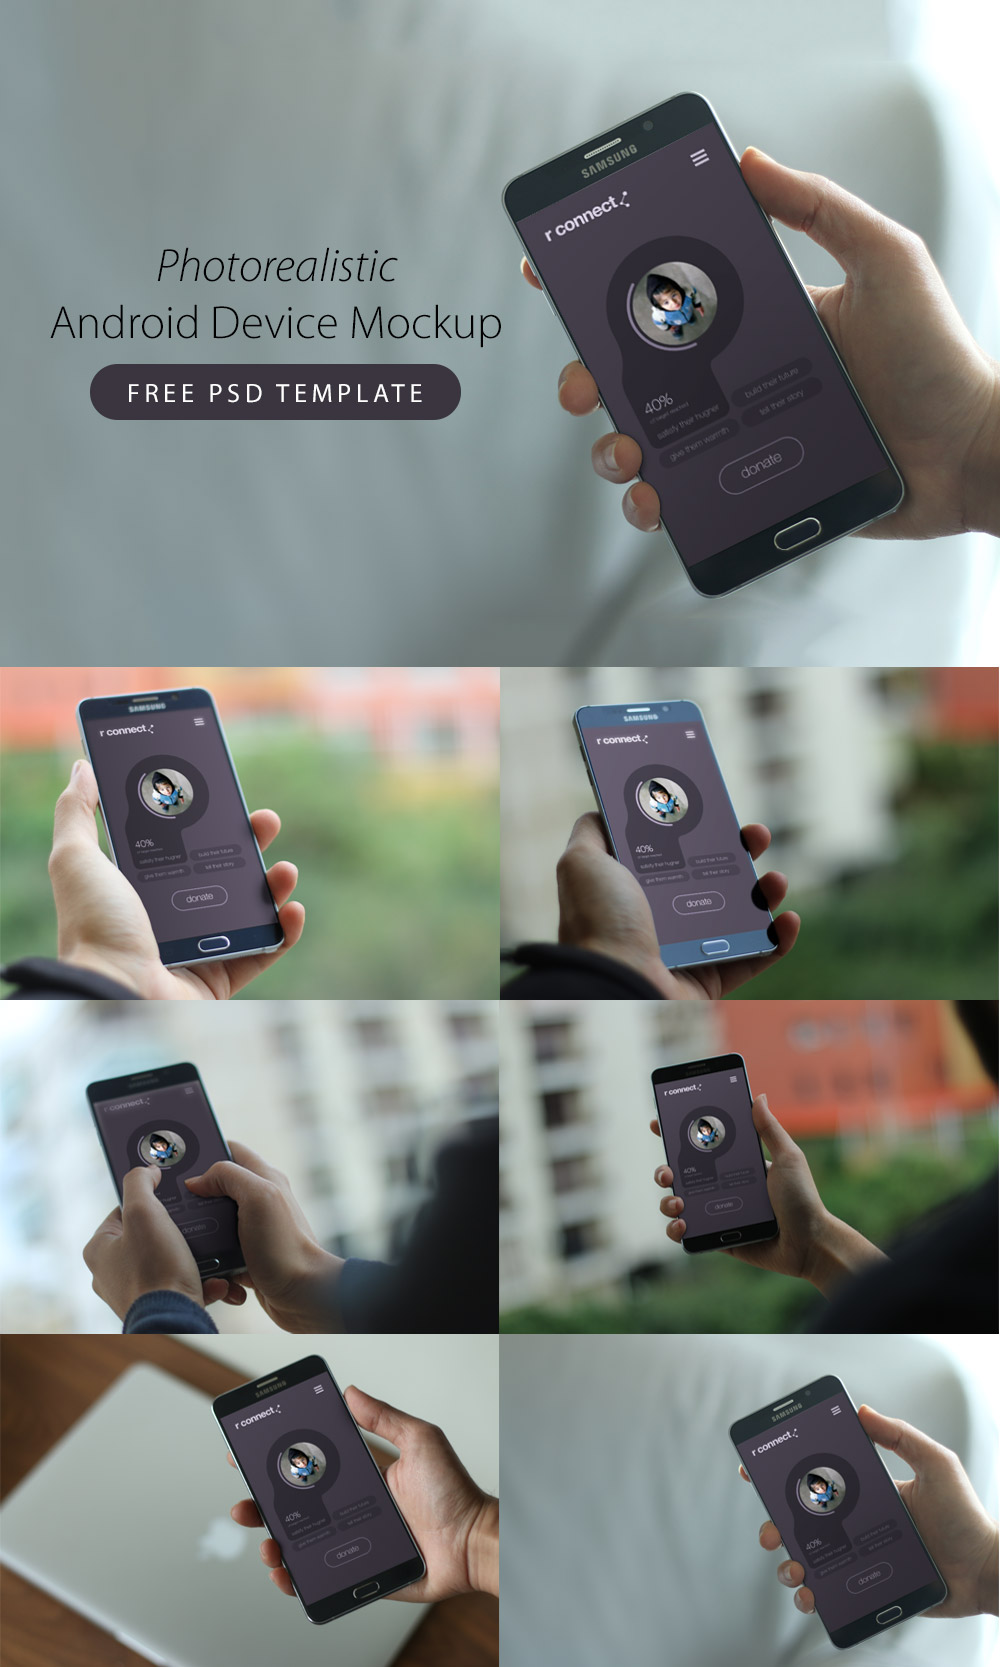 Photorealistic Android Device Mockup Free PSD Templates